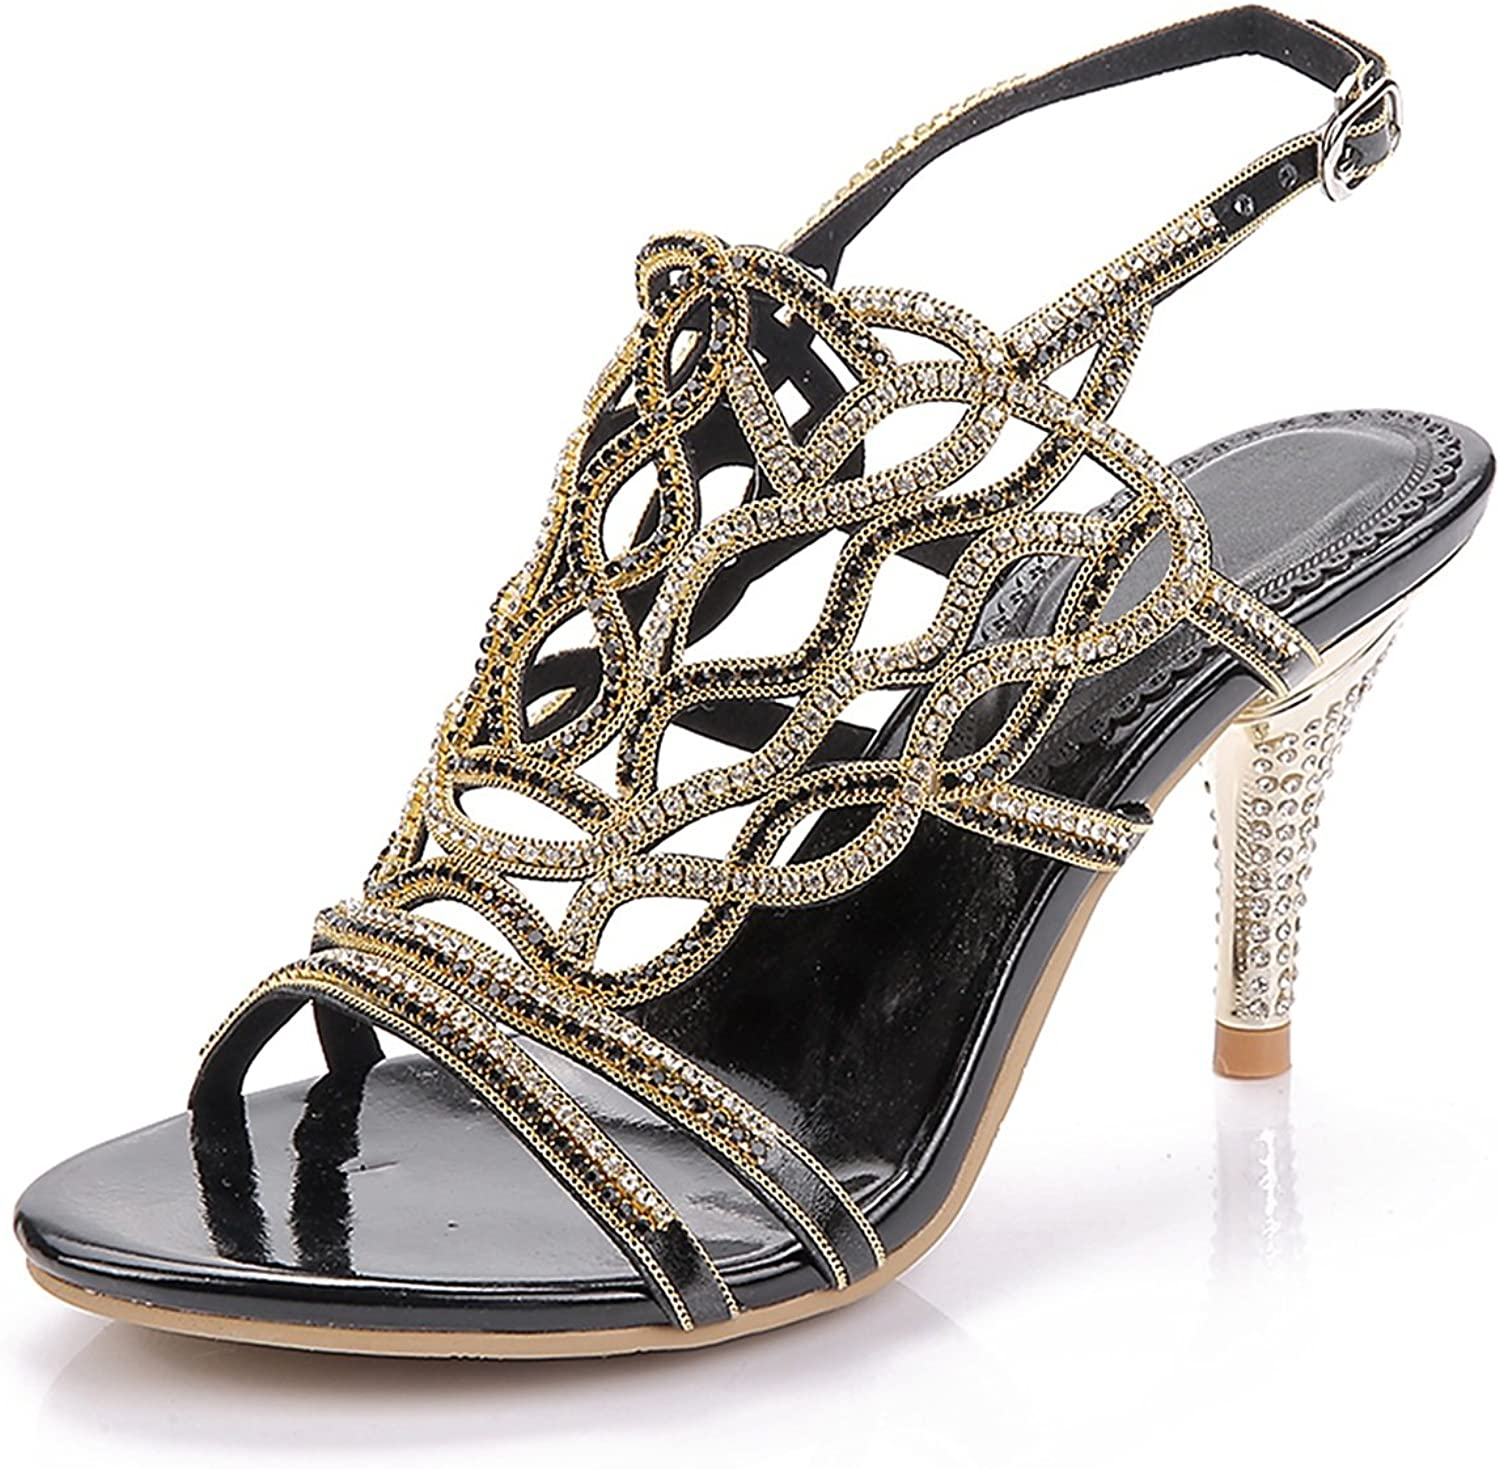 Women's shoes Glitter Leather Spring Fall Basic Pump Sandals Stiletto Heel for Casual gold Silver